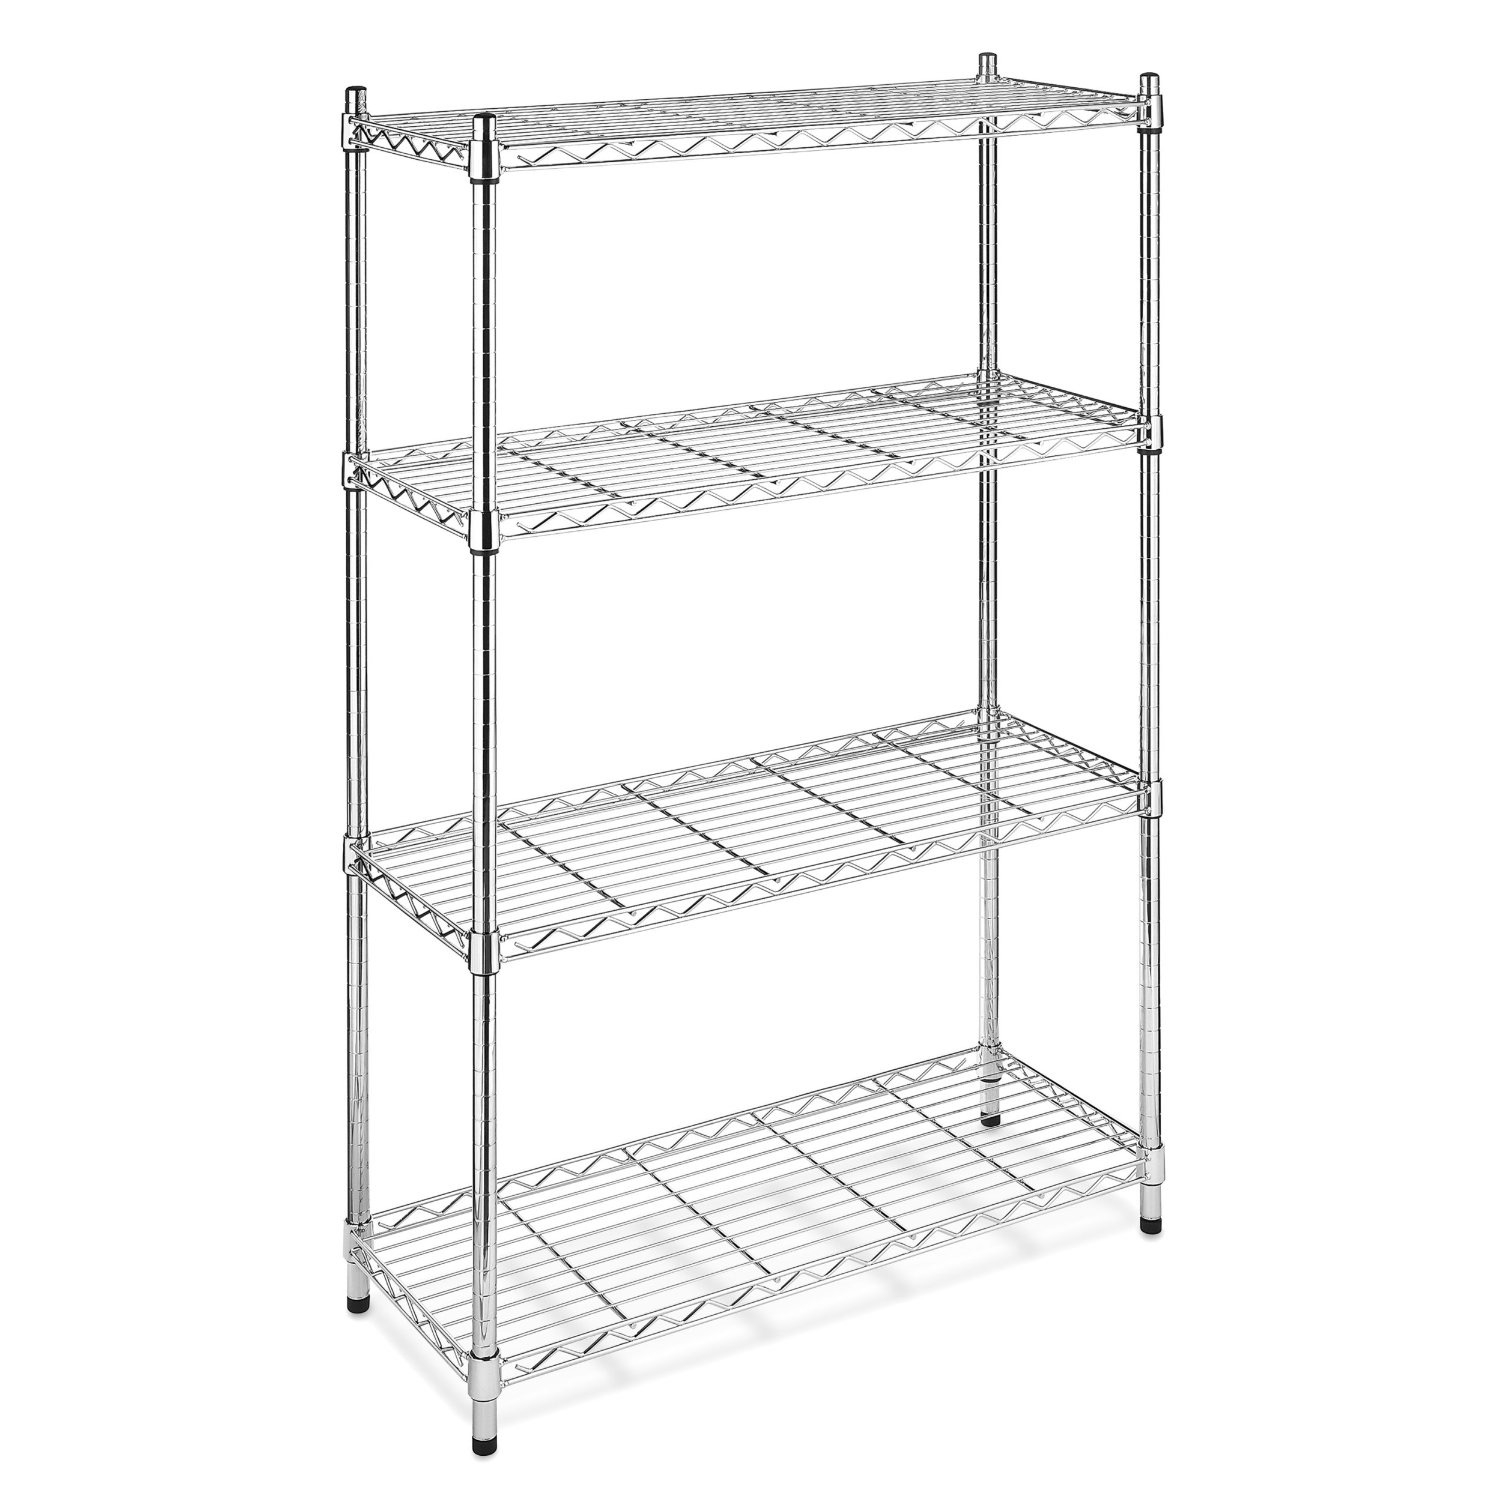 4-Shelf Steel Storage Shelves in Chrome, WS4TSY6824 :  This 4-Shelf Steel Storage Shelves in Chrome features chrome, ventilated shelves that adjust at one Inch increments. Shelves will hold 350-Pounds, it is great for office, garage, entertainment, kitchen. Unit measures 14-Inch by 36-Inch by 54-Inch. Each shelf holds up to 350 pounds (evenly distributed); Wire shelves adjustable in 1-inch increments; No tools required; 10-year limited warranty.